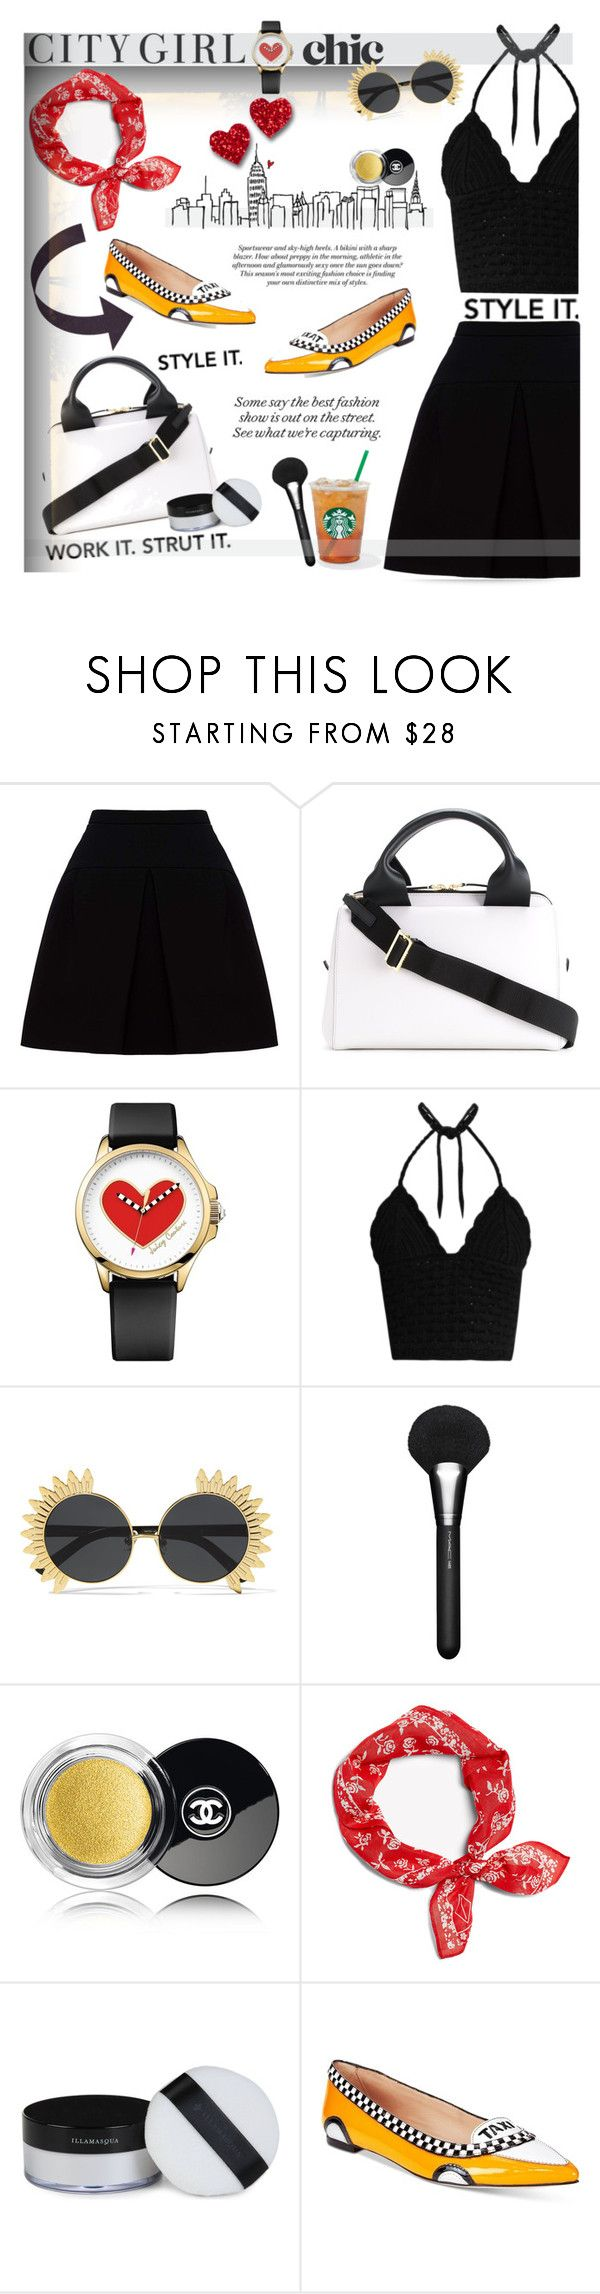 """Style It. ❤️💋"" by selmendonca ❤ liked on Polyvore featuring Trilogy, Miu Miu, Marni, Juicy Couture, RED Valentino, Linda Farrow, MAC Cosmetics, Chanel, Illamasqua and Kate Spade"